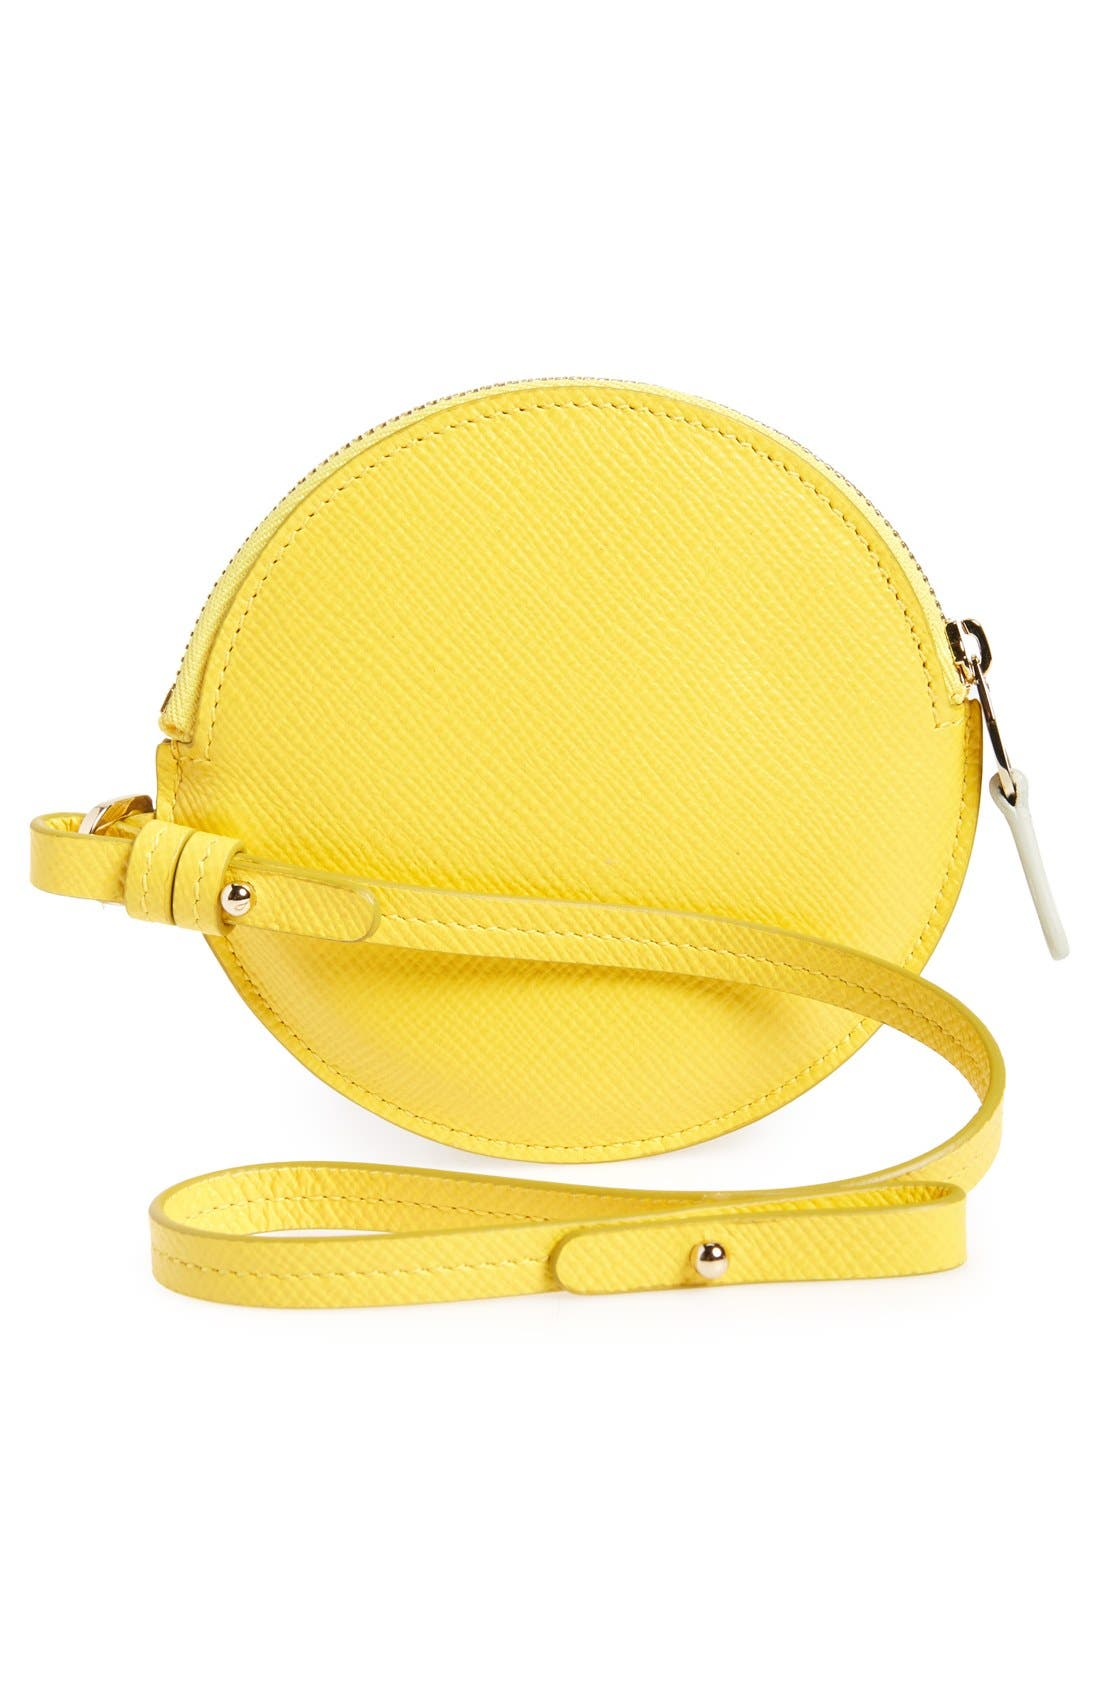 Circle Leather Coin Purse,                             Alternate thumbnail 12, color,